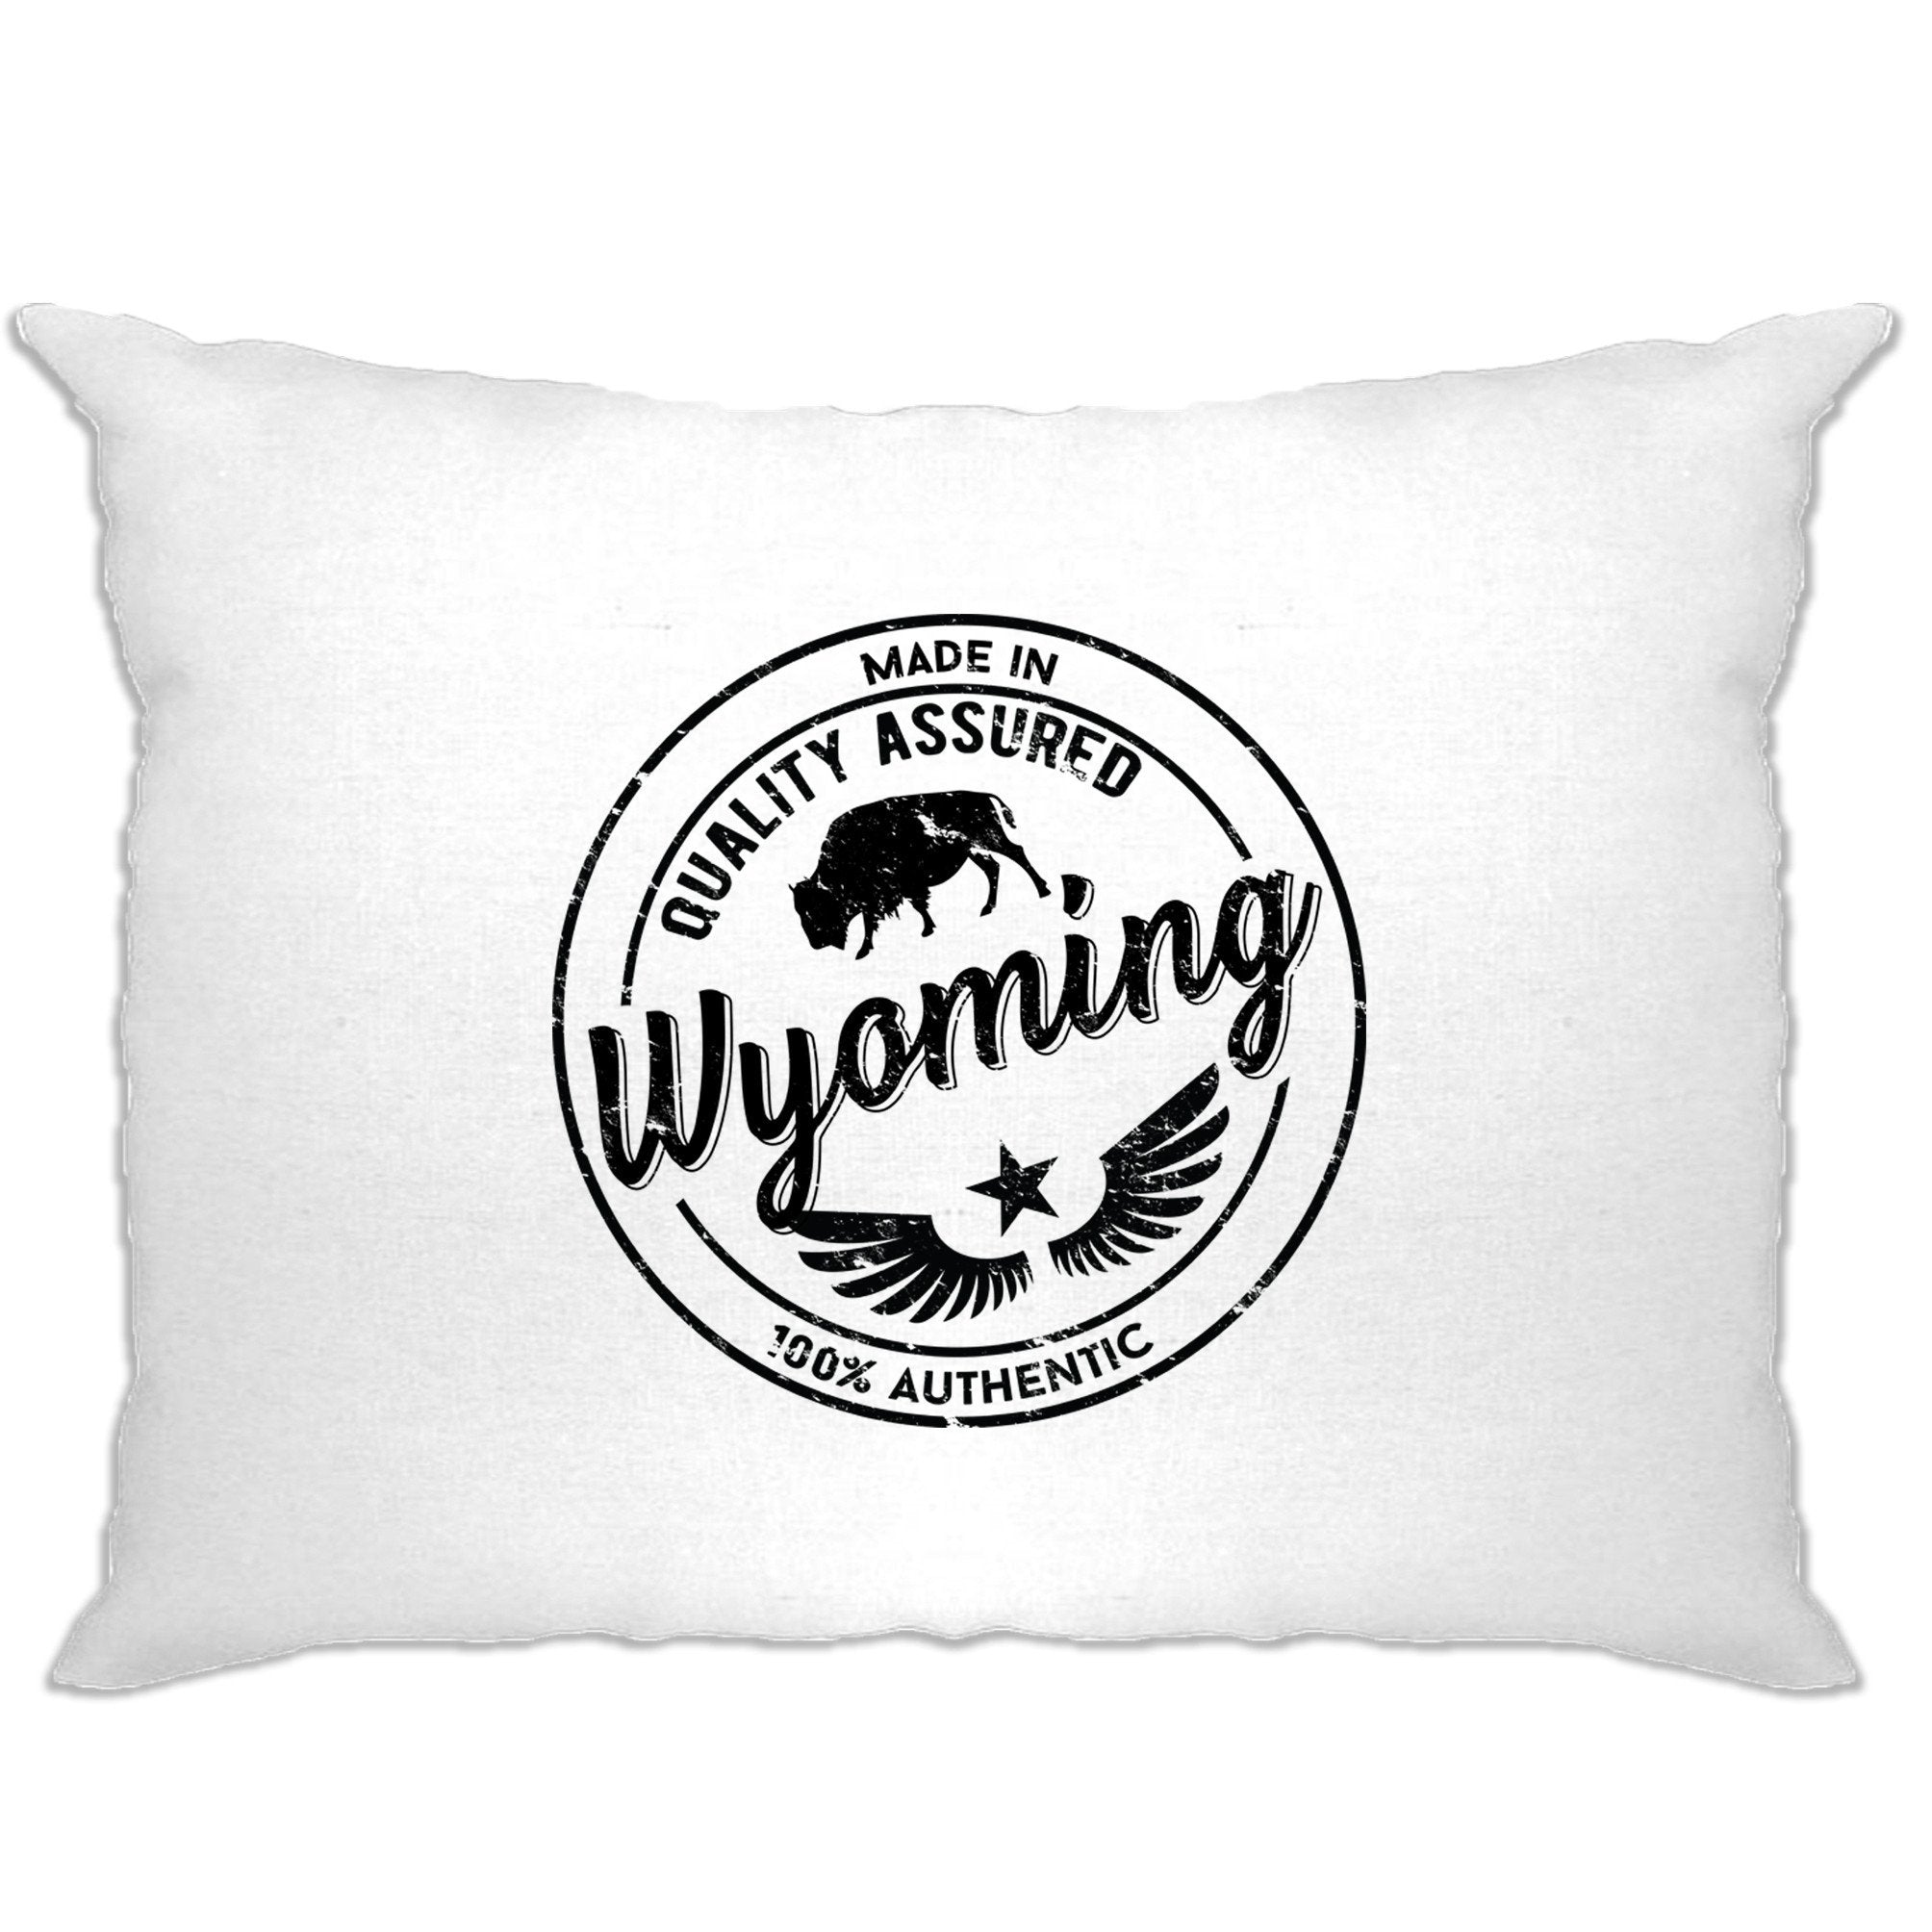 Hometown Pride Pillow Case Made in Wyoming Stamp